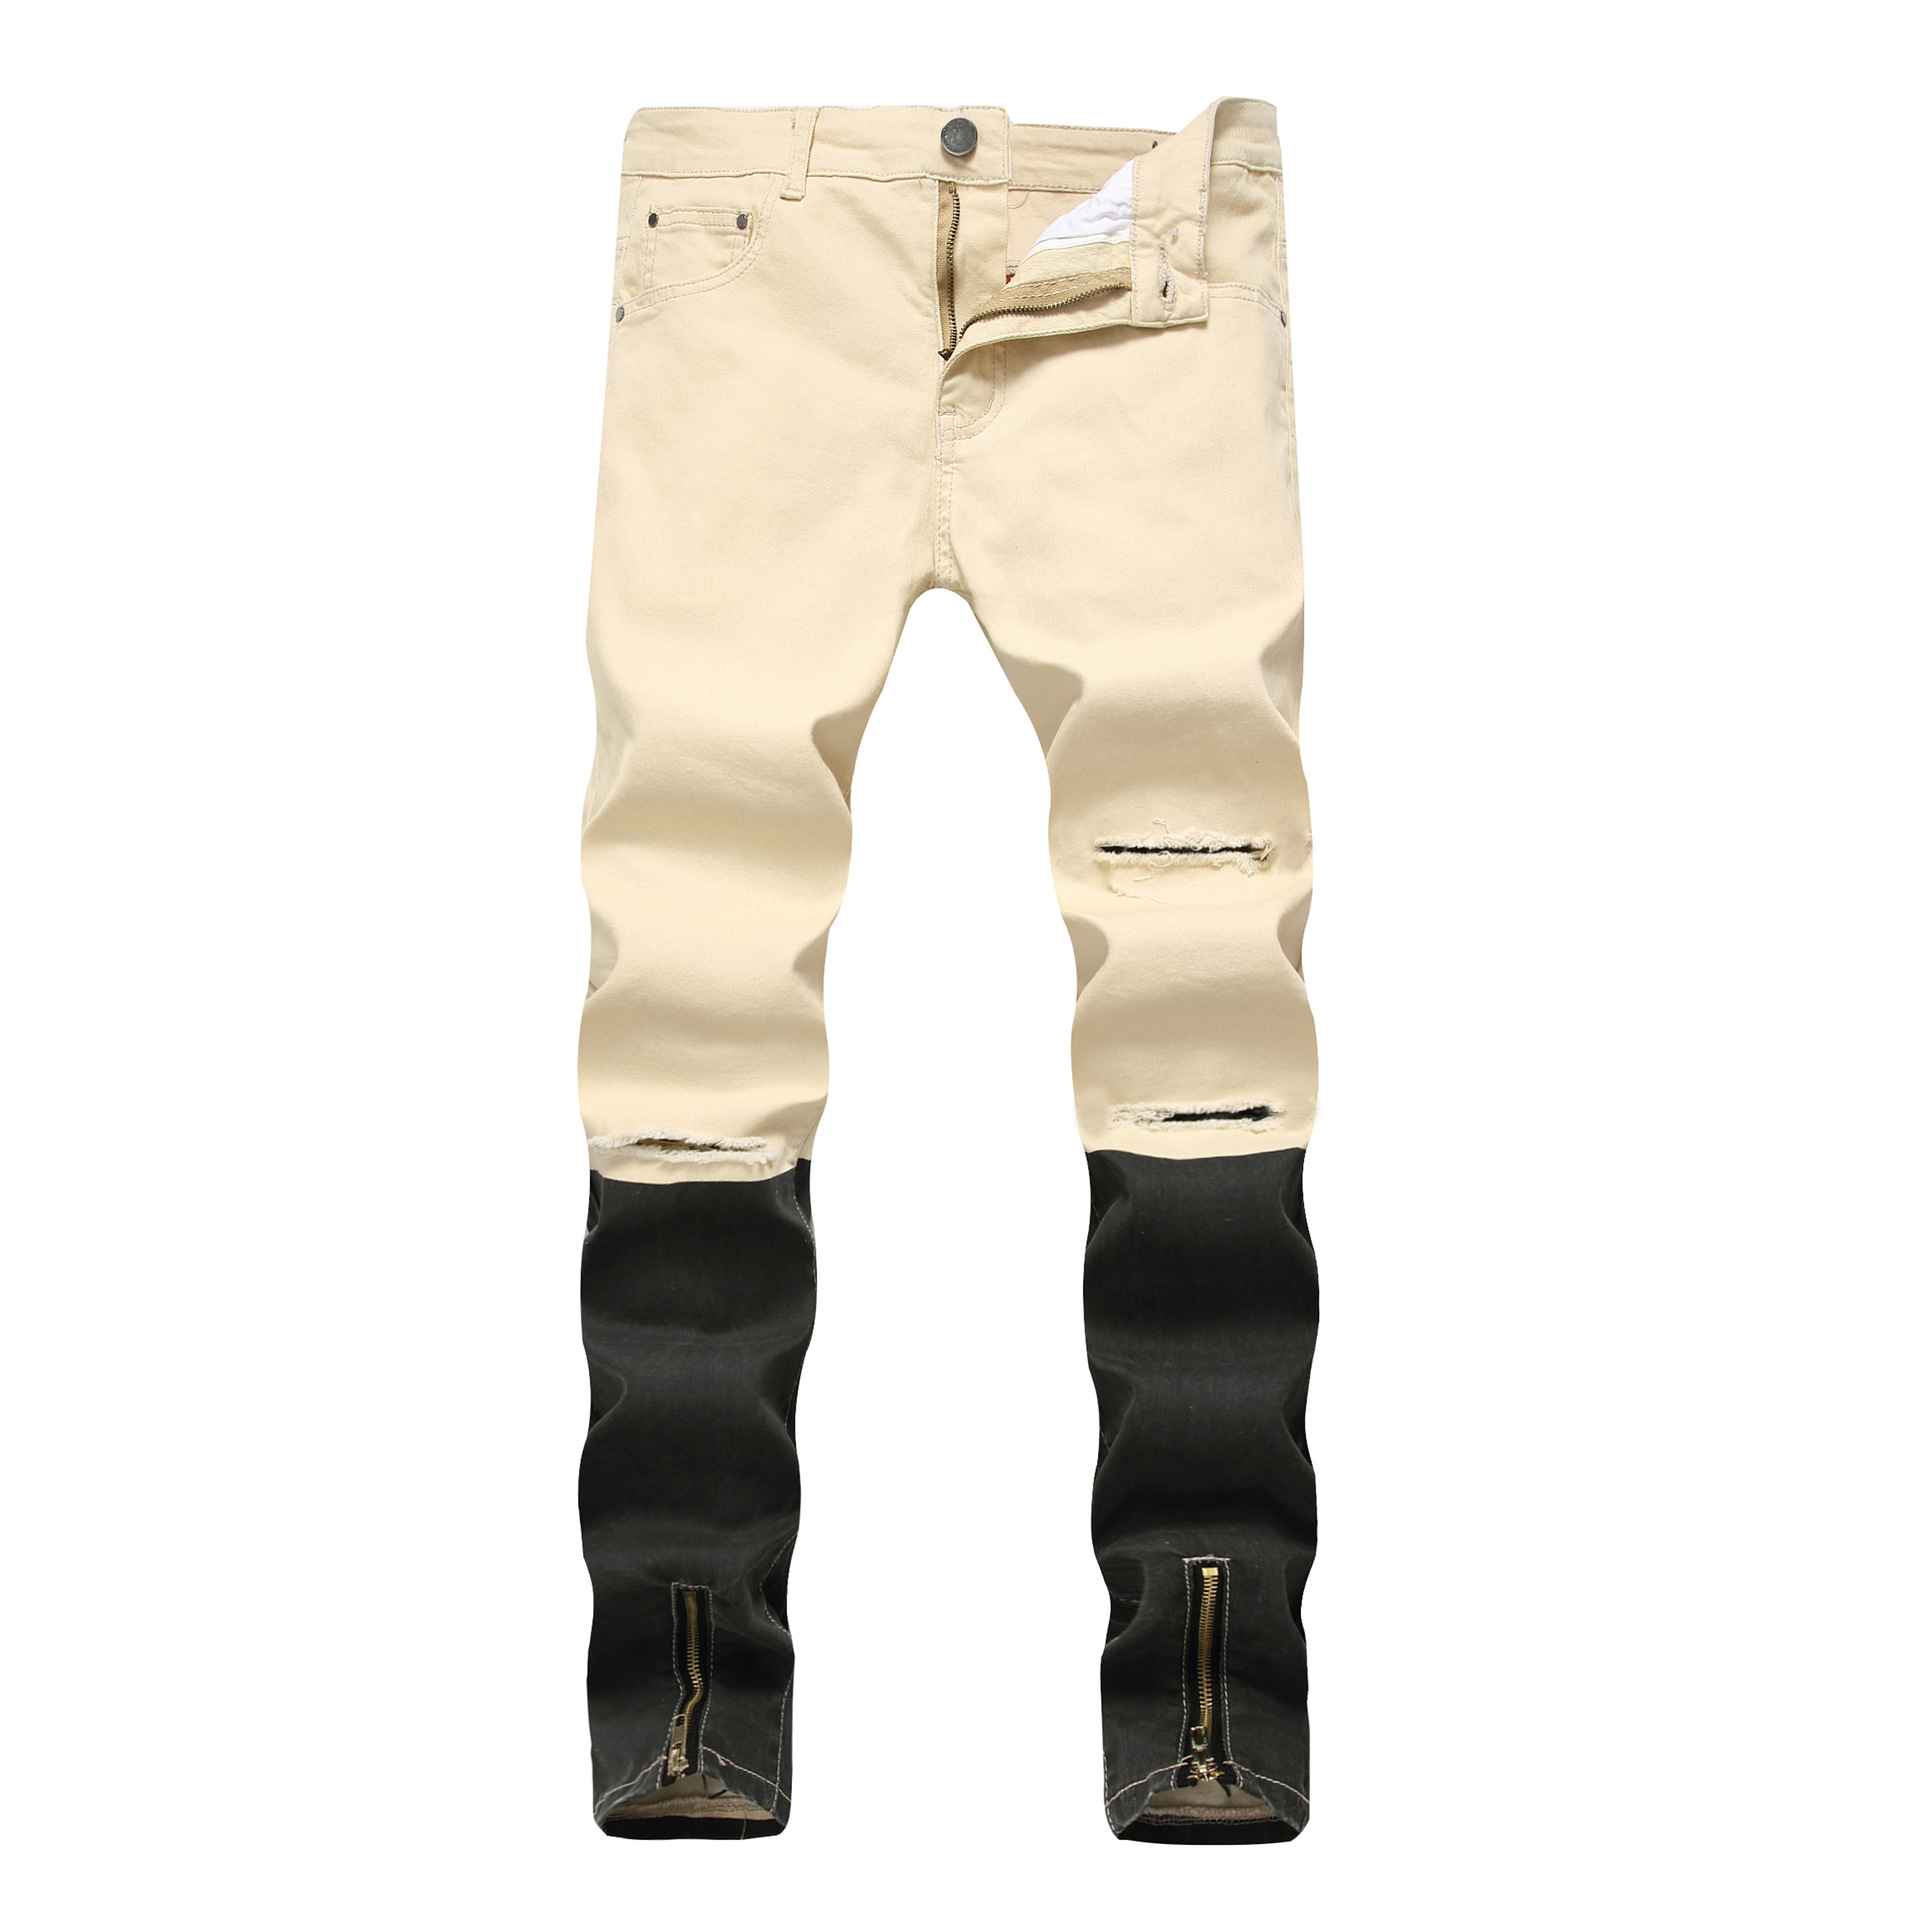 New 2018 Mens wear, khaki trousers, zippers, jeans, casual pants, elastic, tight holes,  ...